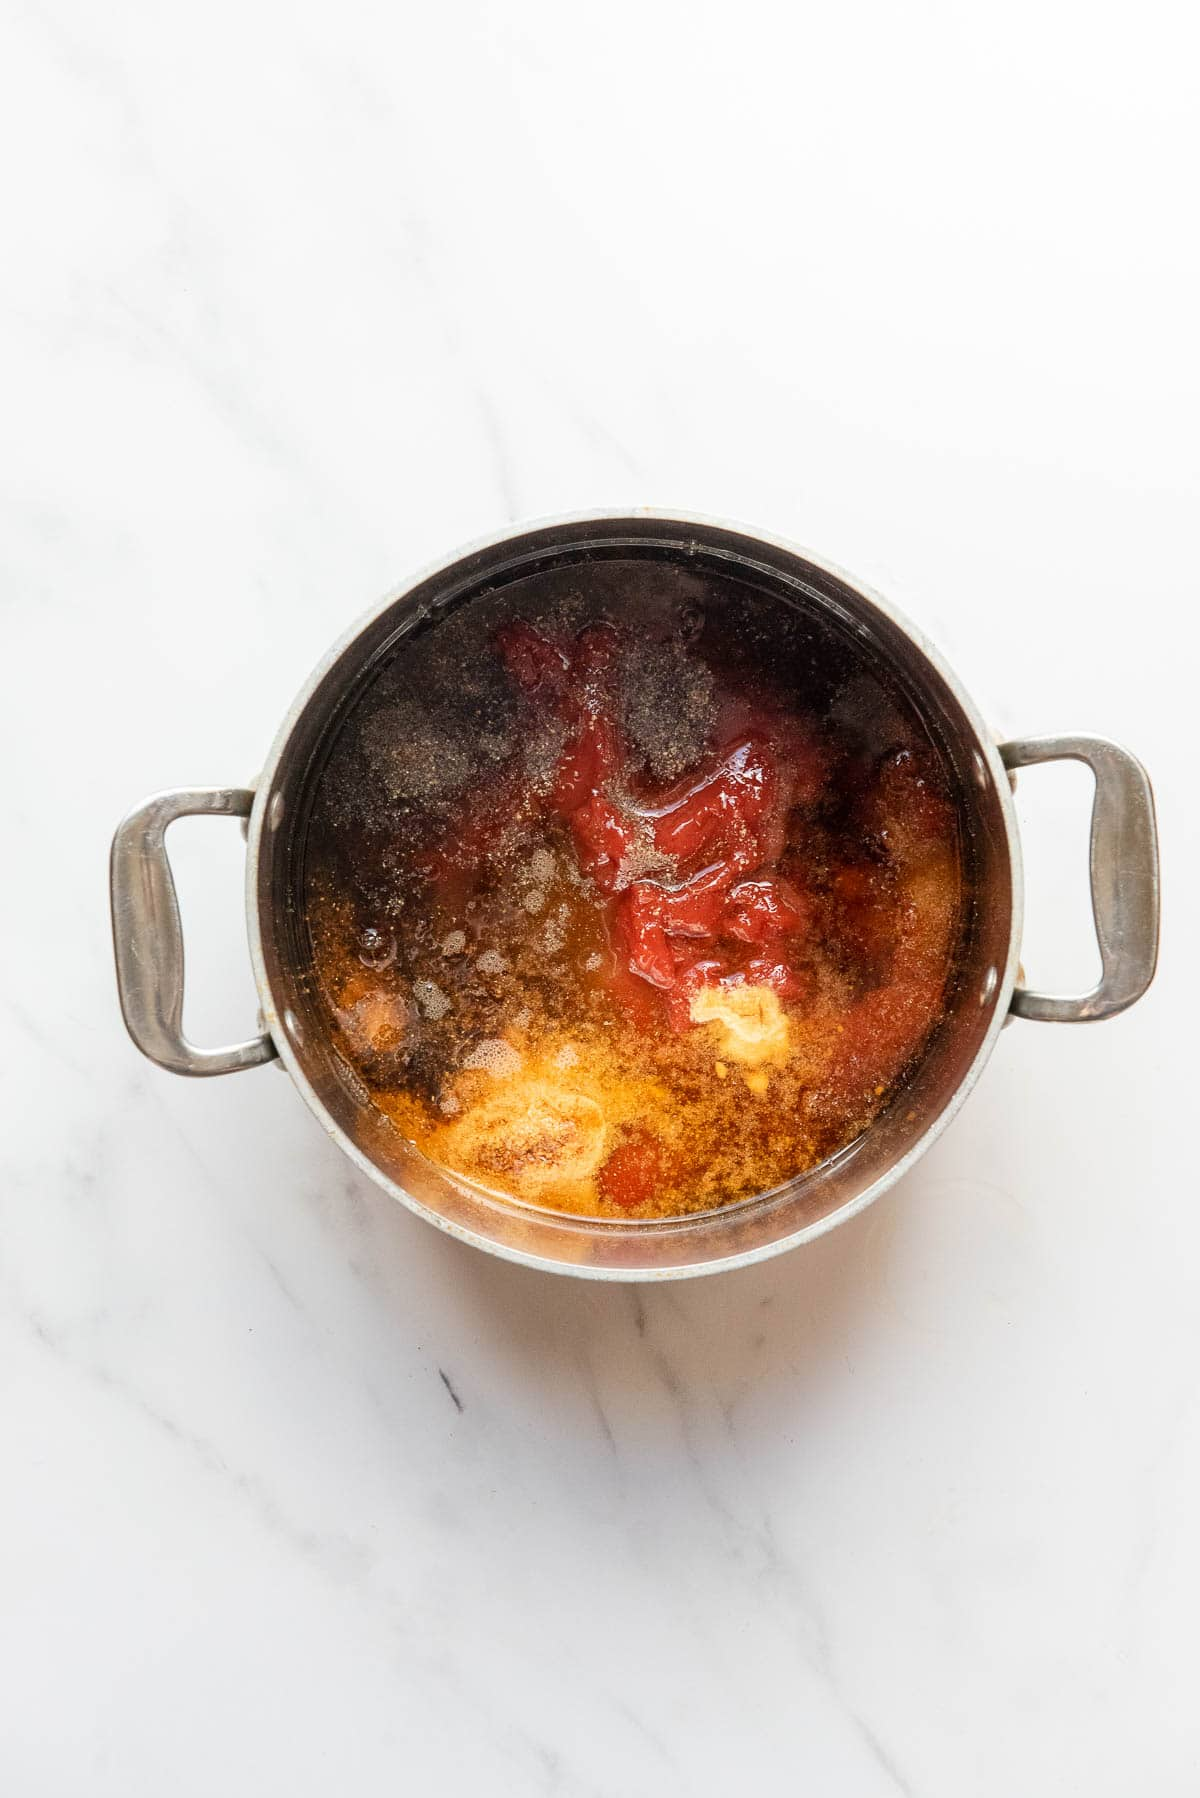 ingredients for homemade barbecue sauce in a sauce pan